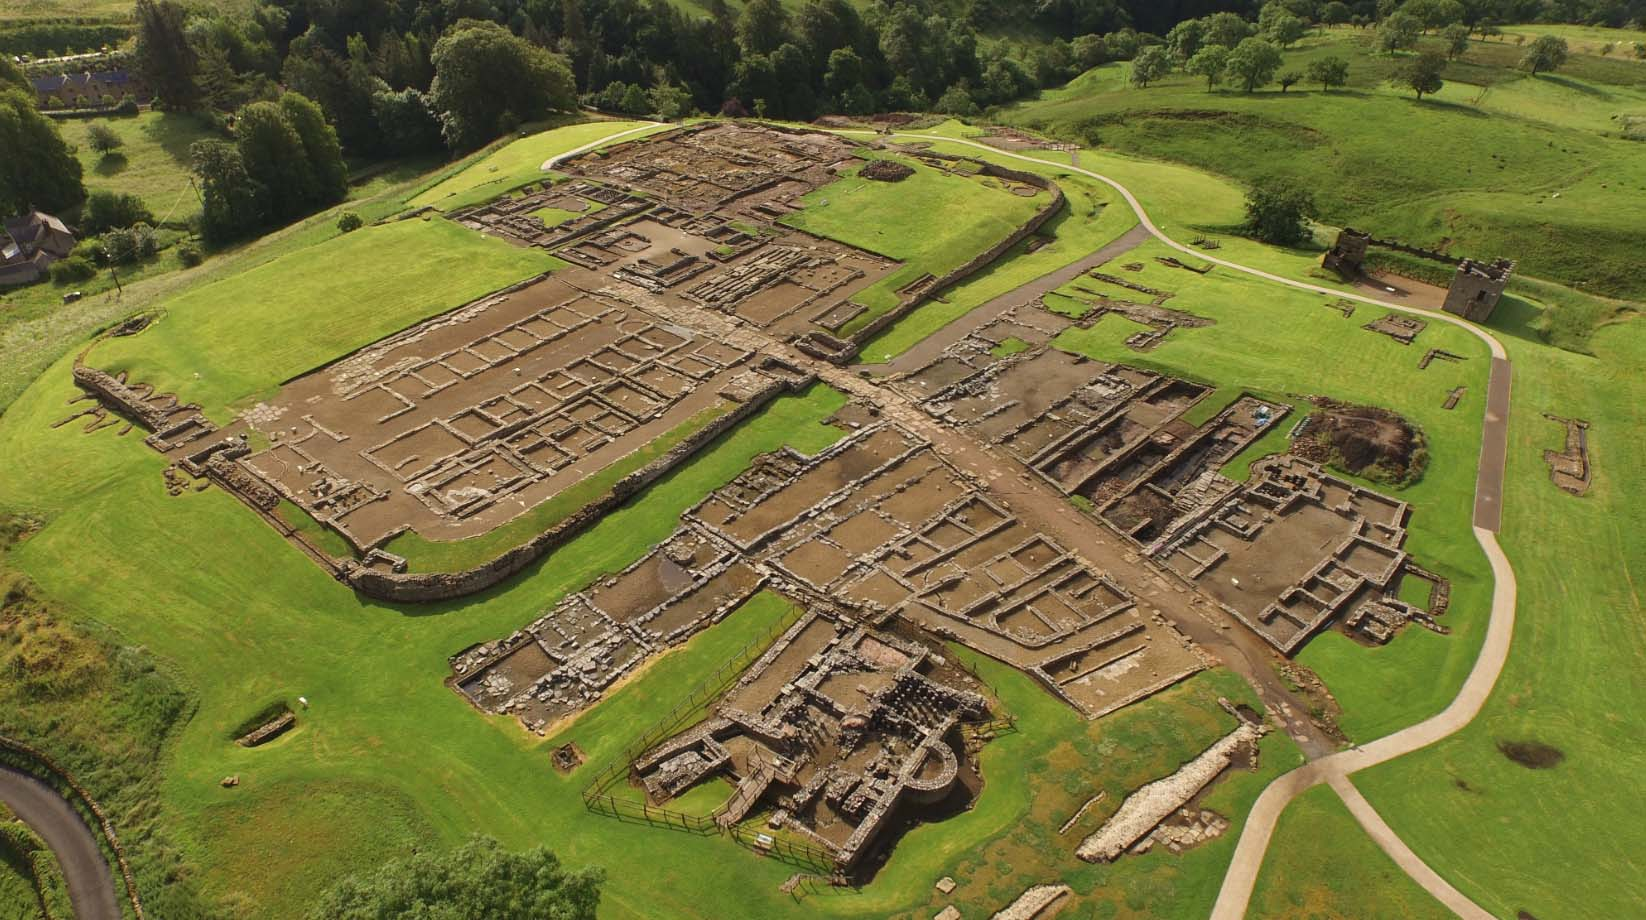 an aerail view of an archaeological site woith foundations and rooms spanning out in a square shape